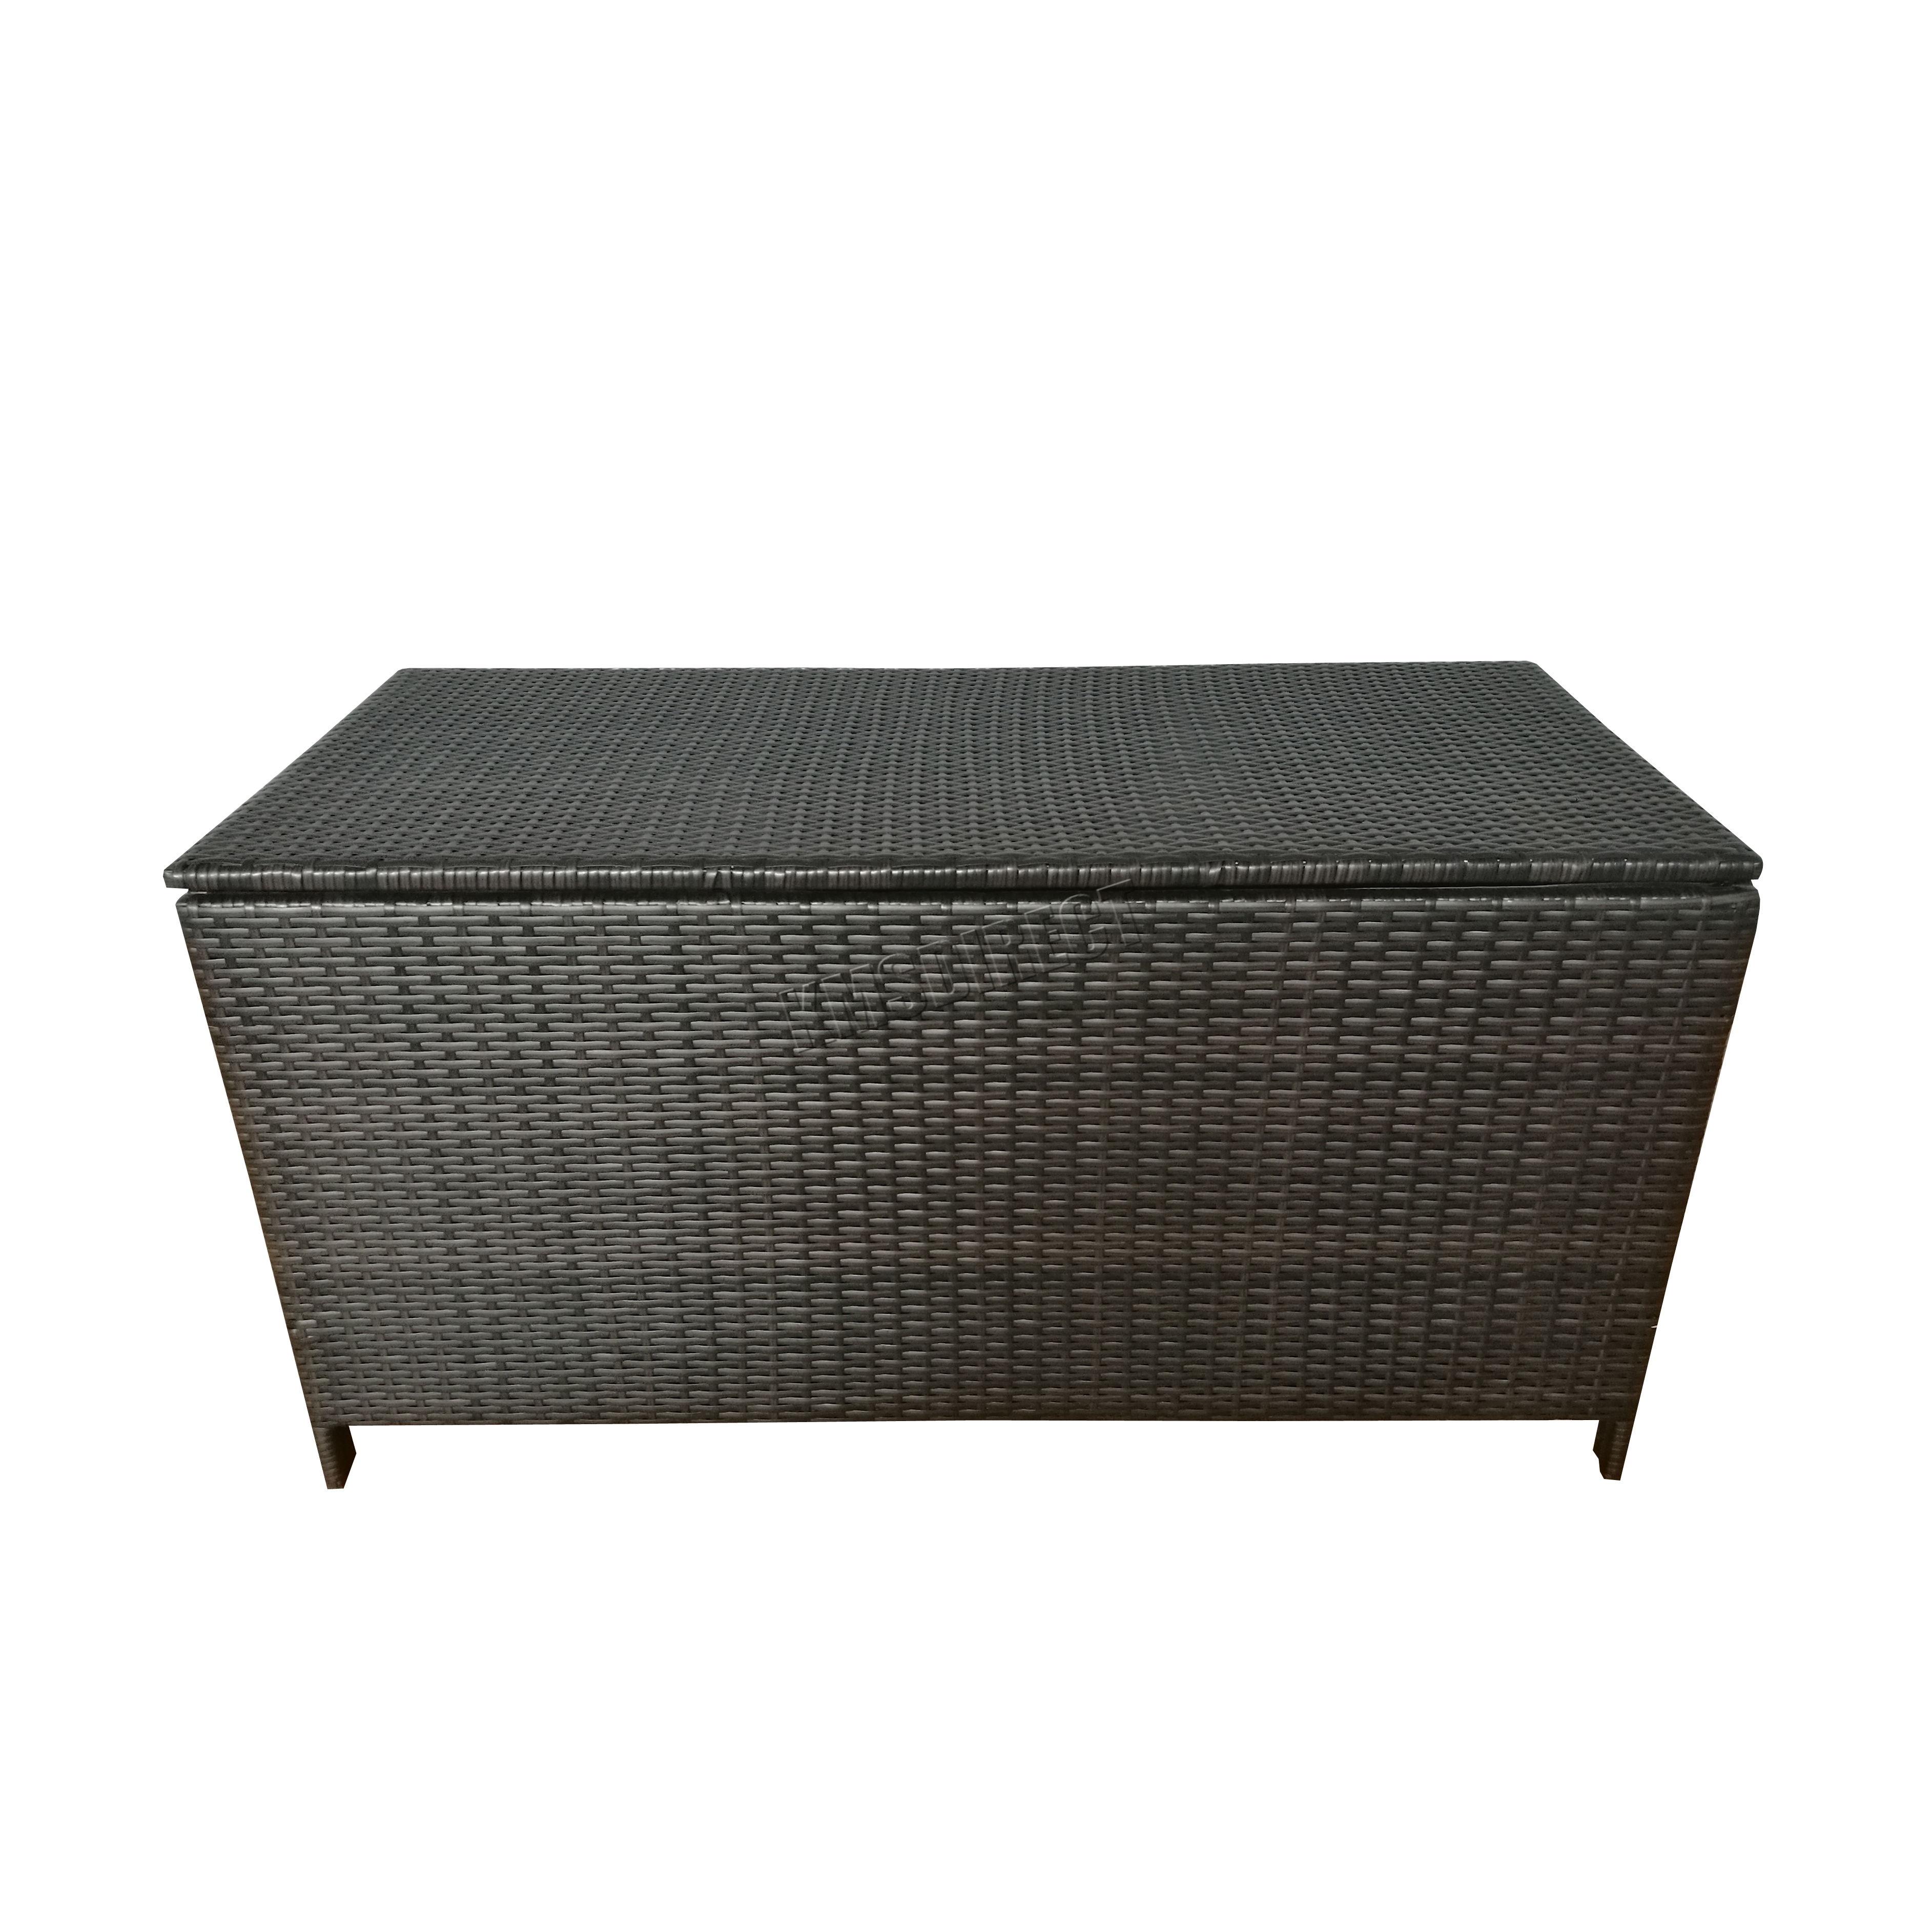 Foxhunter Garden Furniture Rattan Storage Box Woven Patio Outdoor Pe Rsb01 Brown Ebay